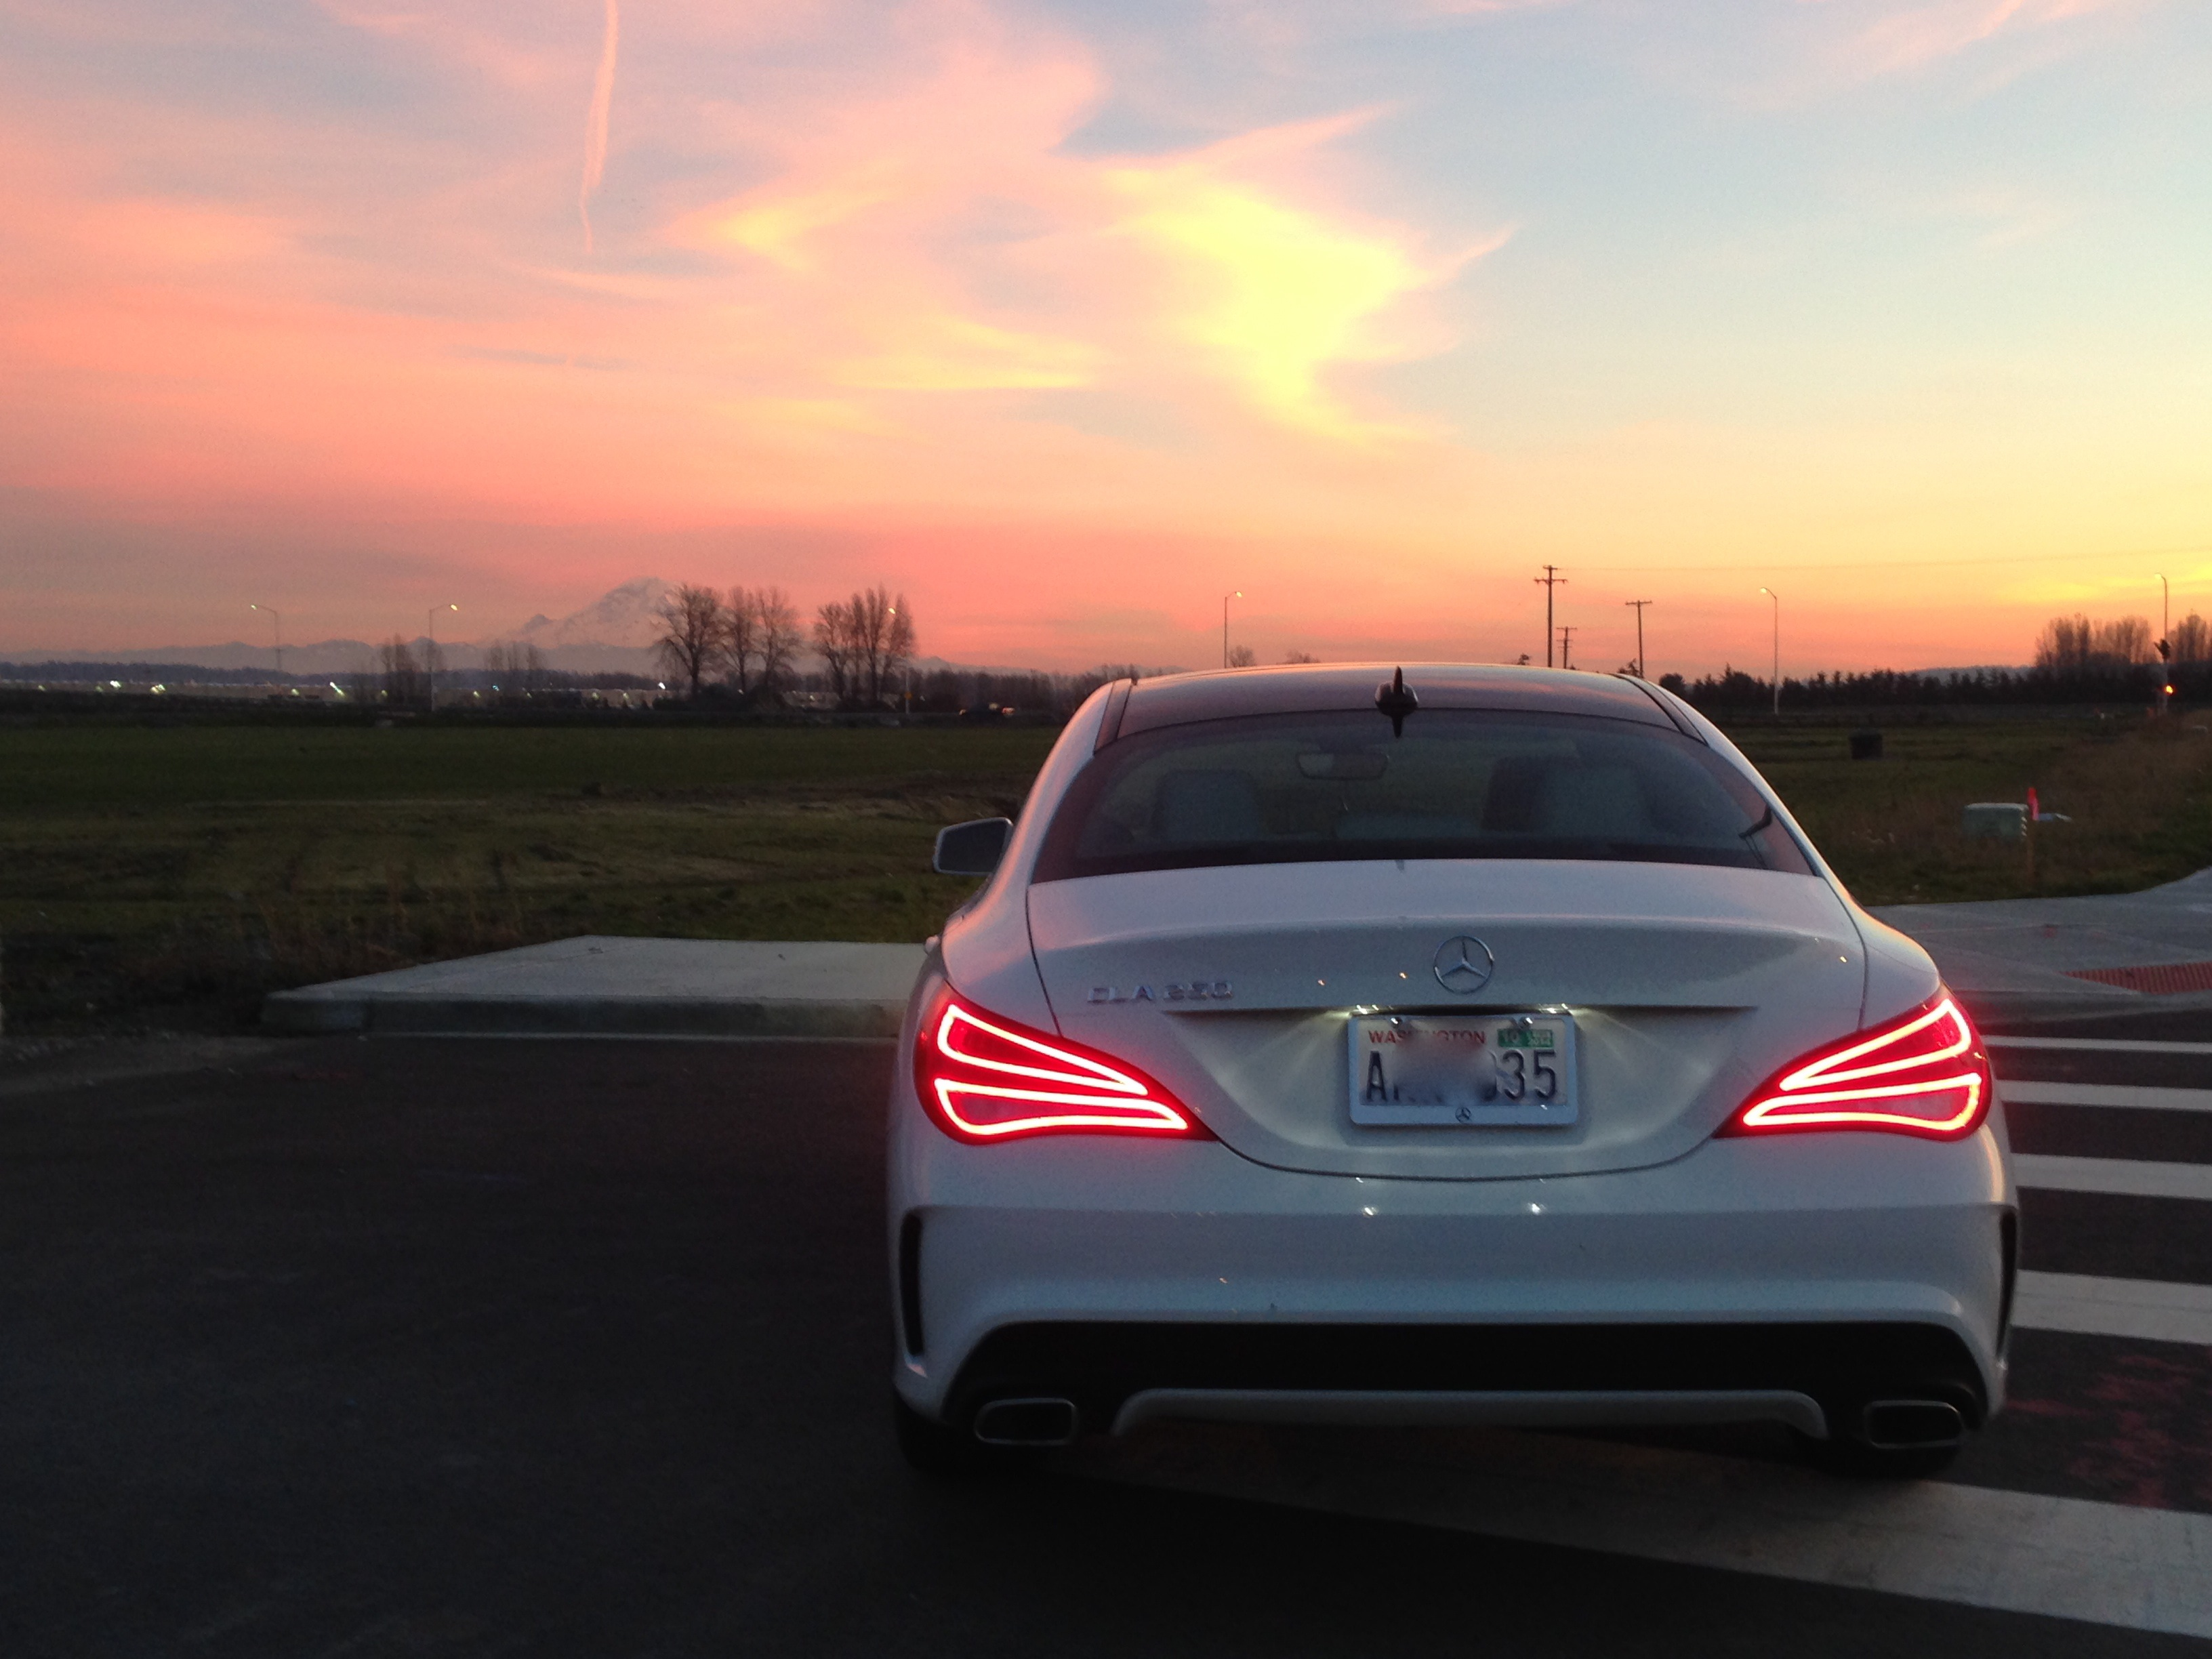 New Mercedes Benz >> Replacing standard Lights with Bi-xenon lights not just the bulbs - Page 2